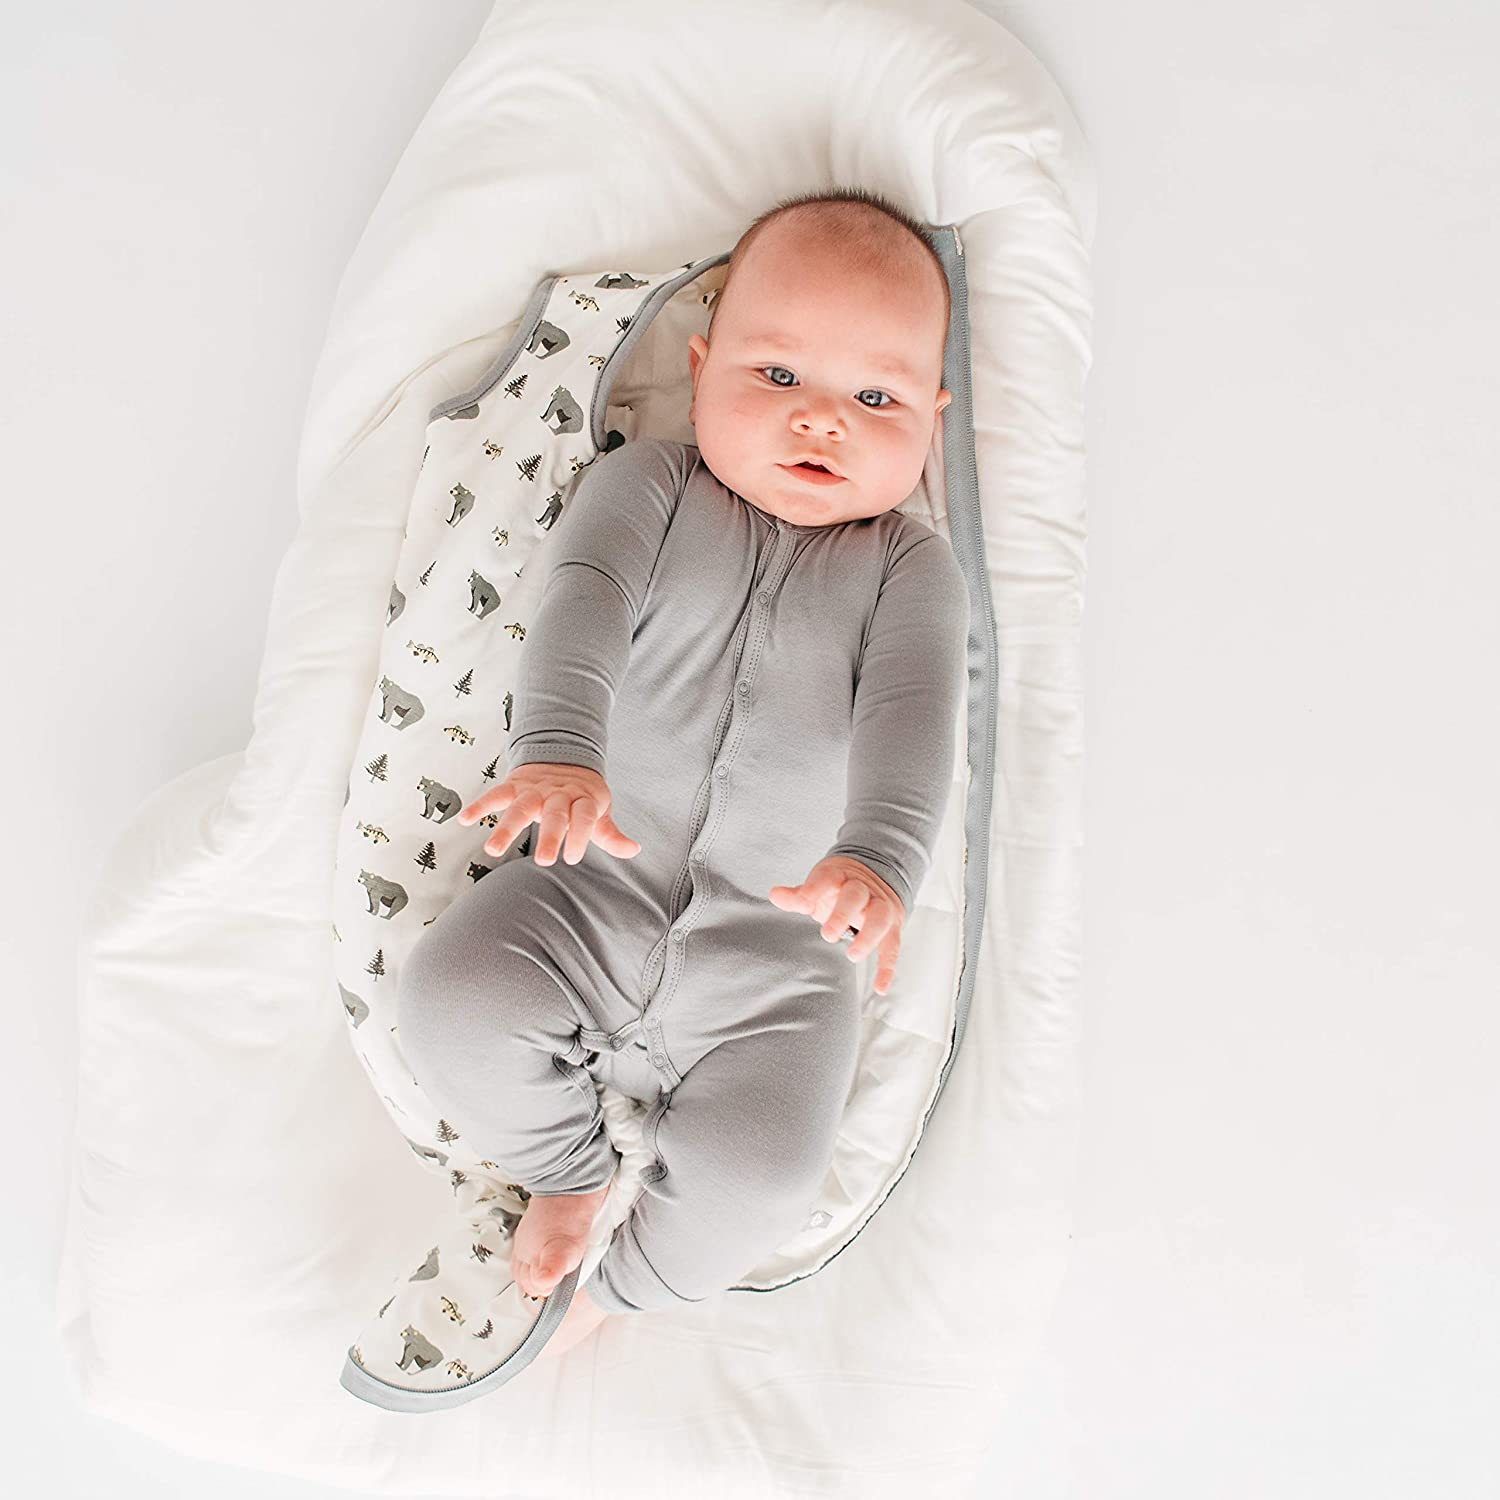 0-24 Months KYTE BABY Rompers 18-24 Months, Graphite Baby Footless Coveralls Made of Soft Organic Bamboo Rayon Material